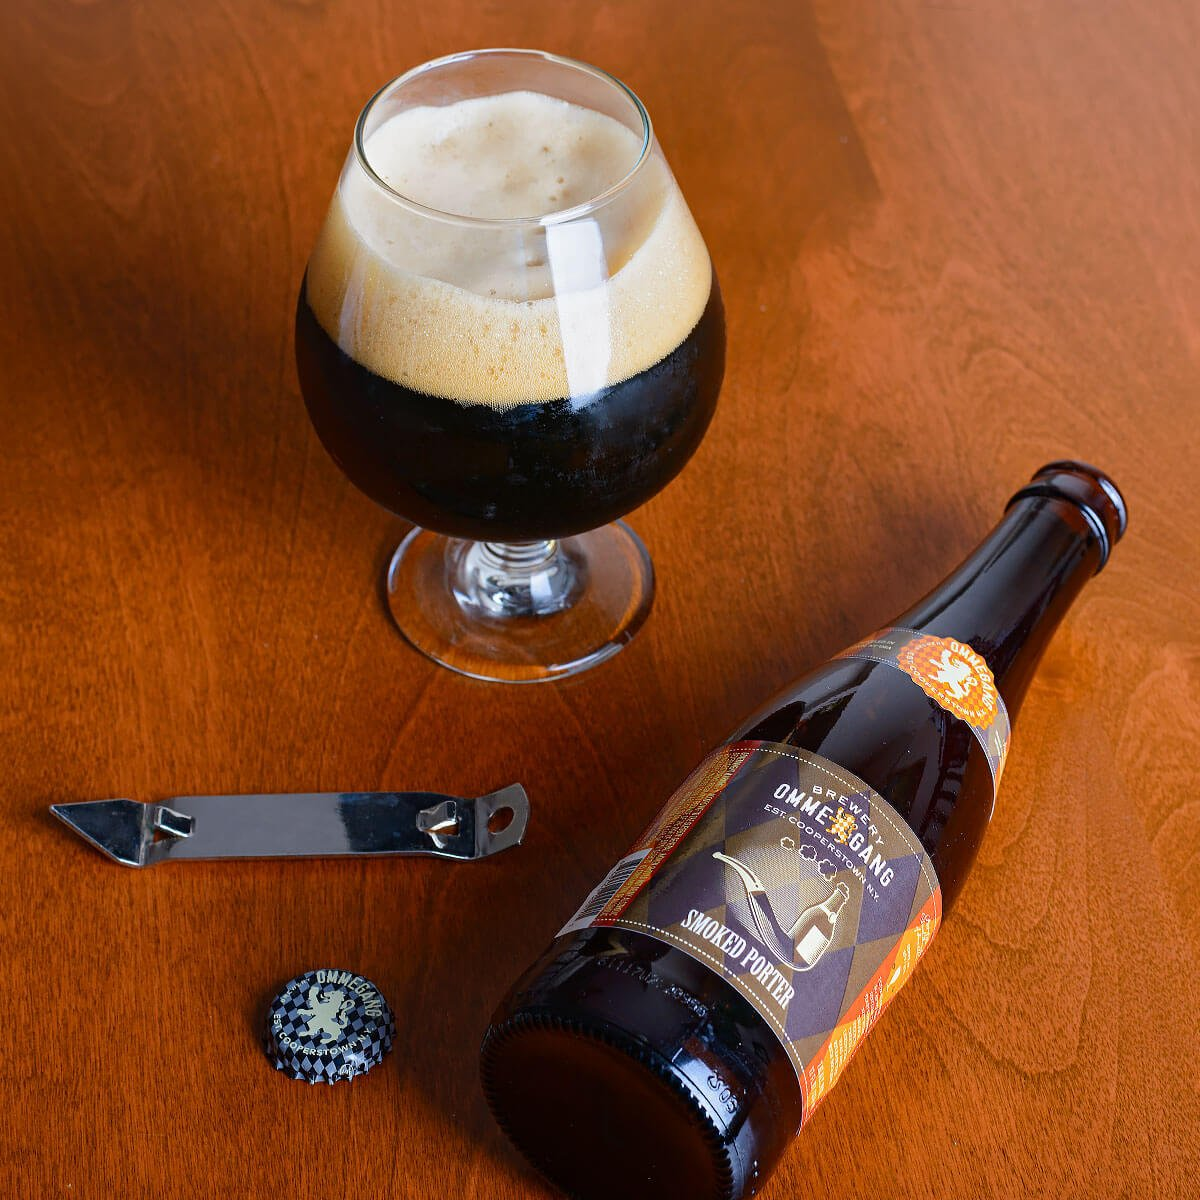 Smoked Porter, an American Porter by Brewery Ommegang